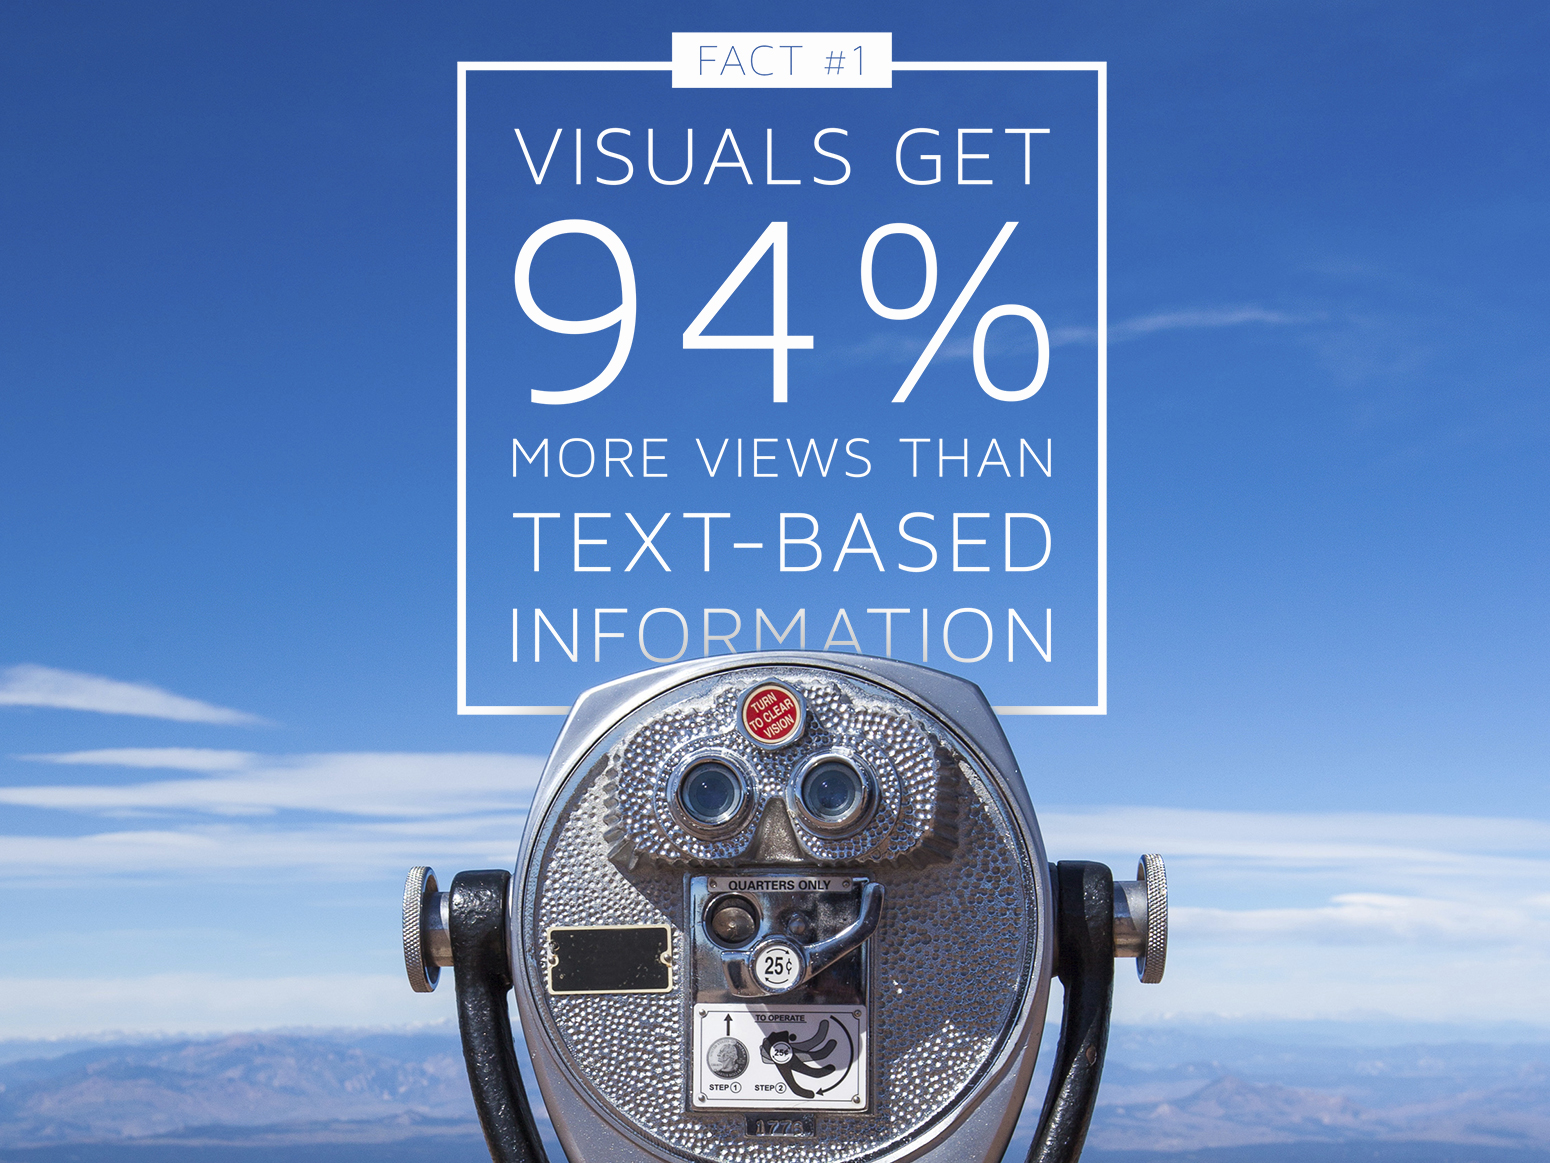 1-visuals-get-94percent-more-views-than-tex-based-information